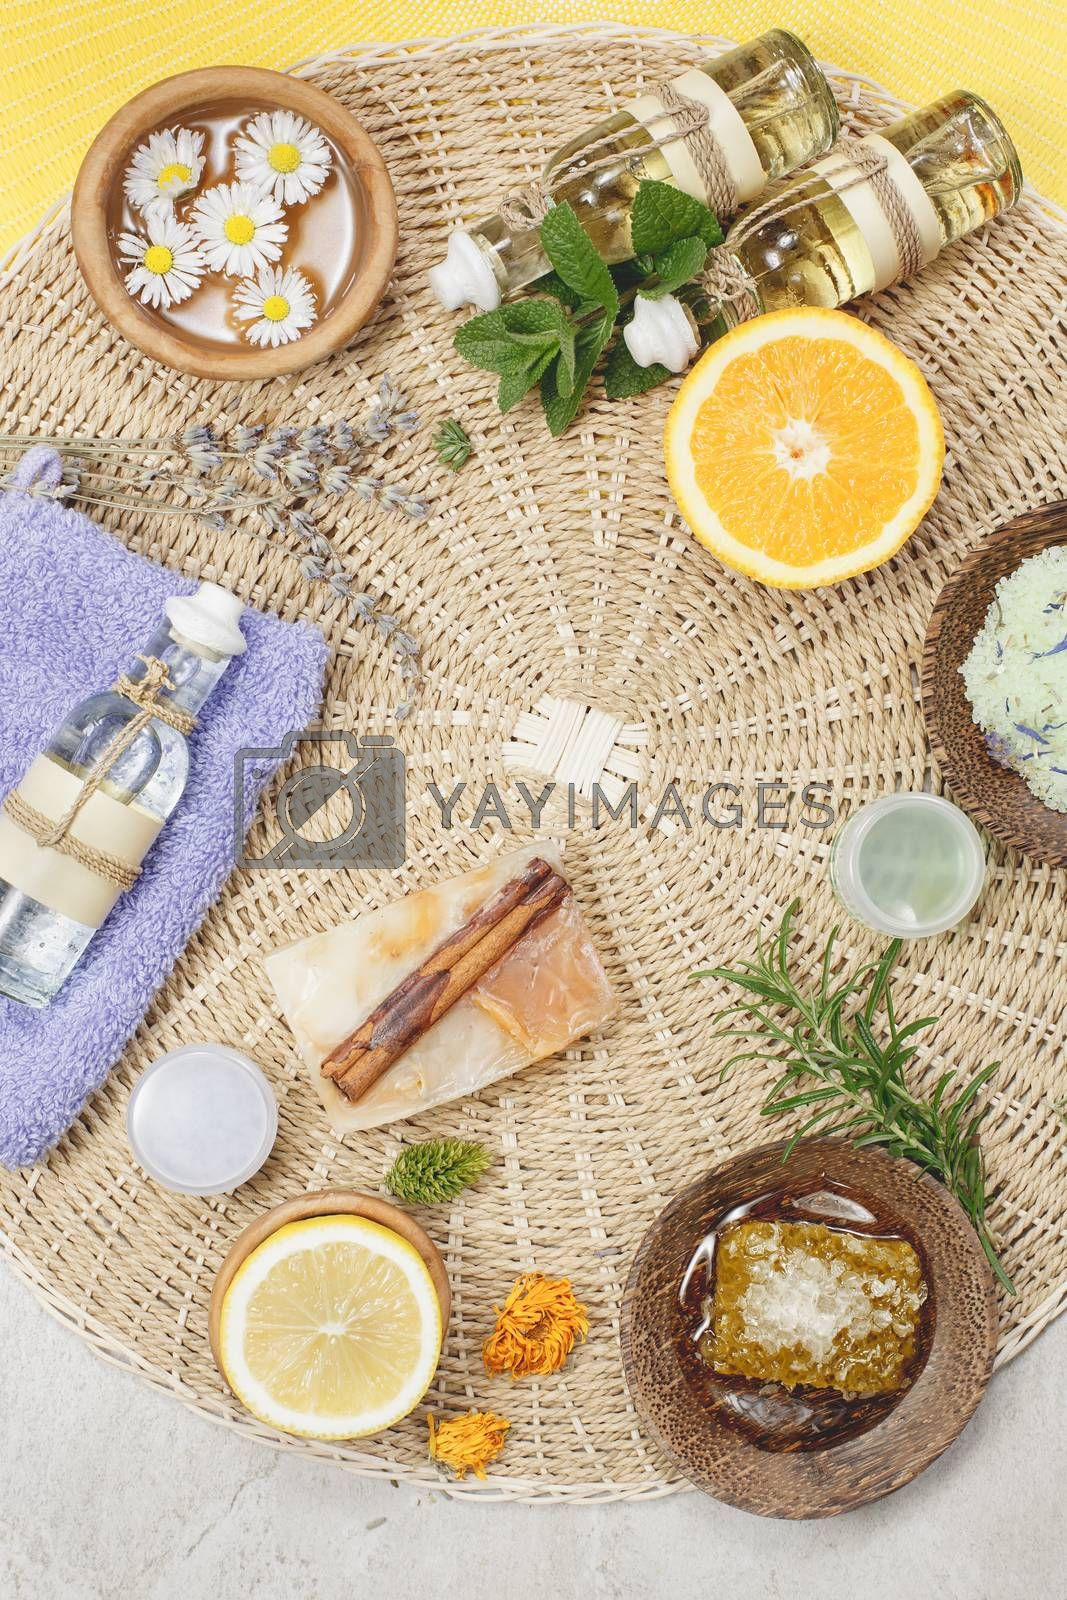 Natural beauty care by Slast20